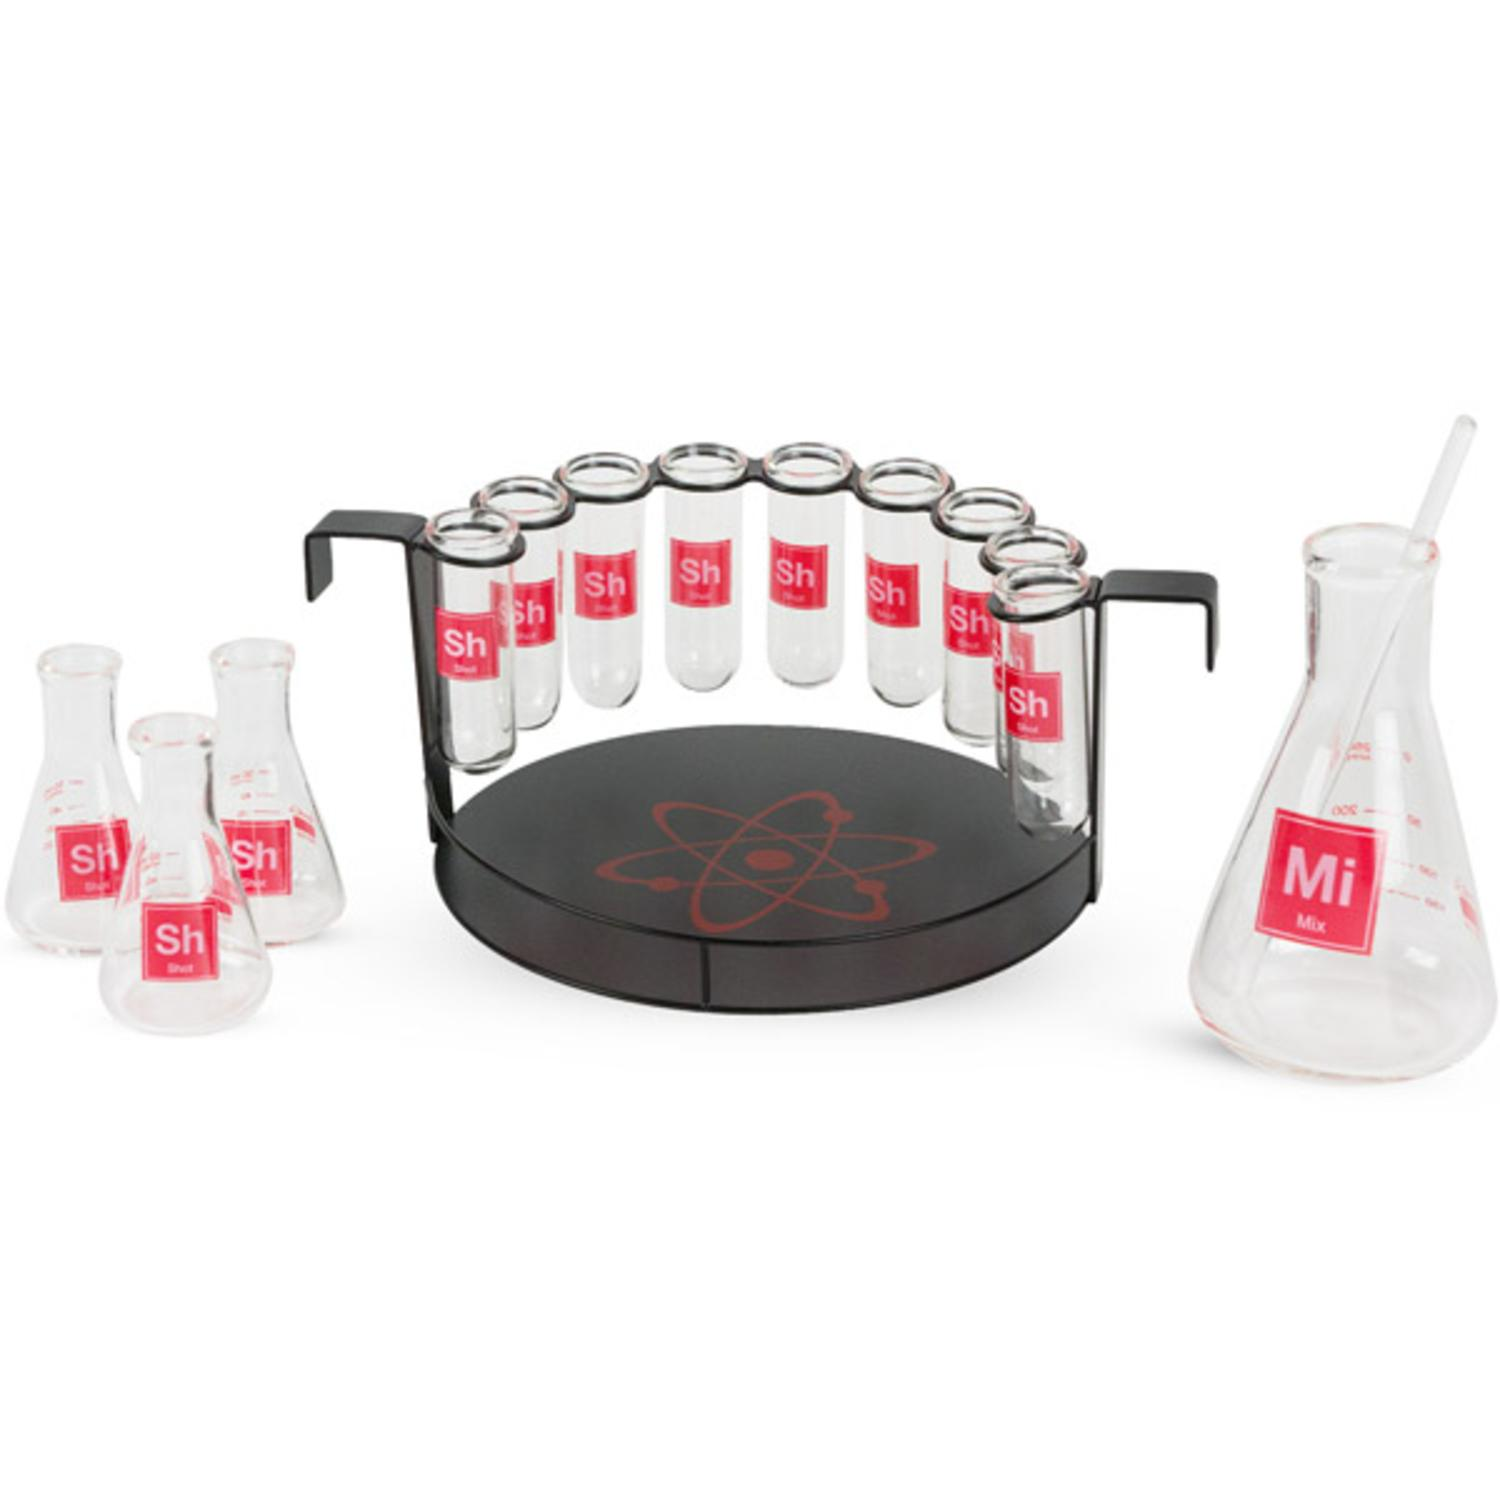 15-Piece Science Themed Novelty Shot Glass Bar Set with Chemistry Glassware and Serving Tray